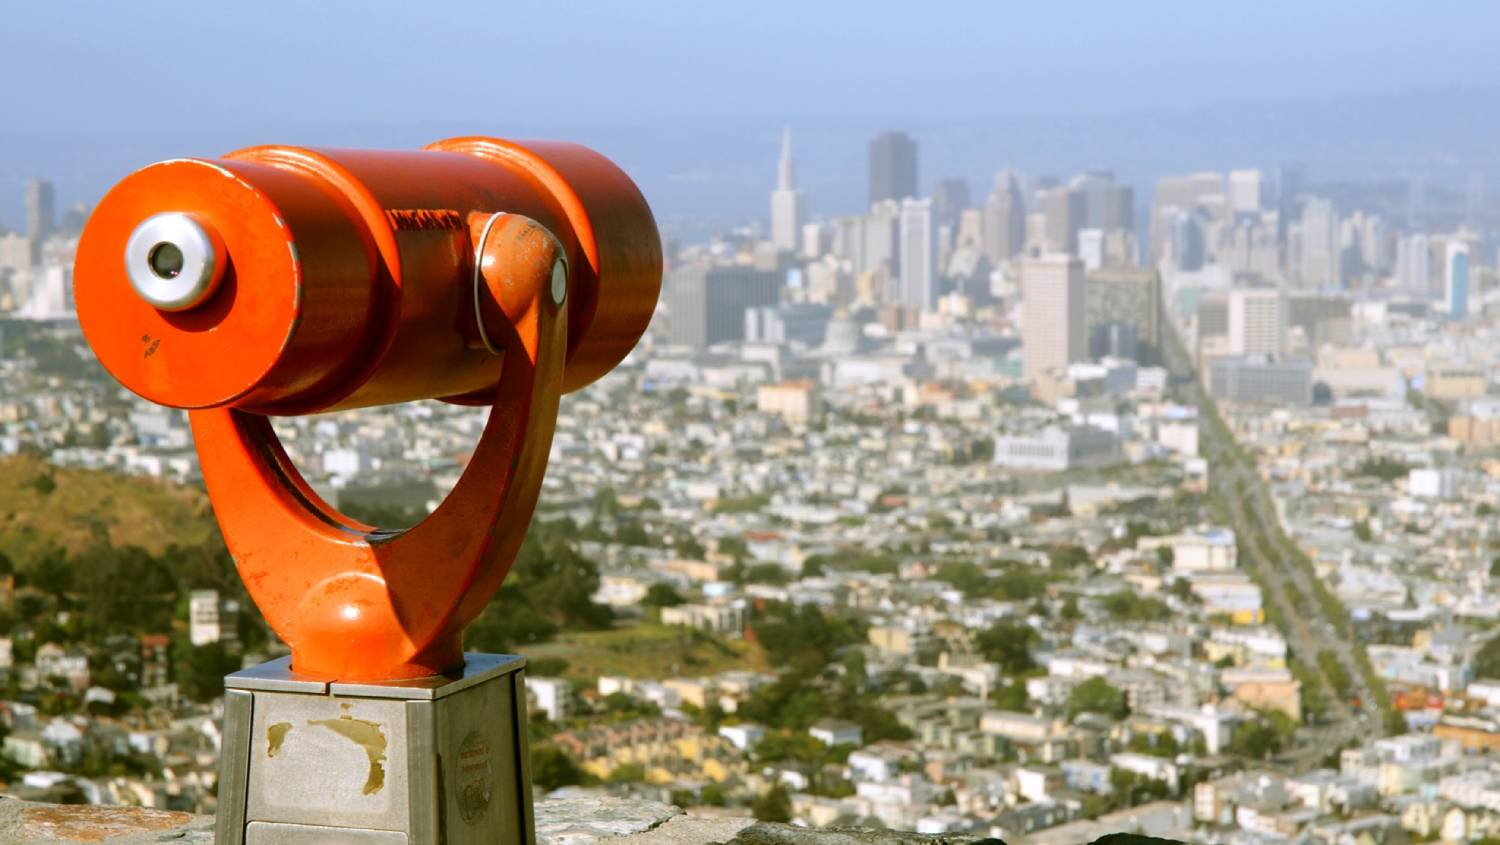 Twin Peaks - Things To Do In San Francisco